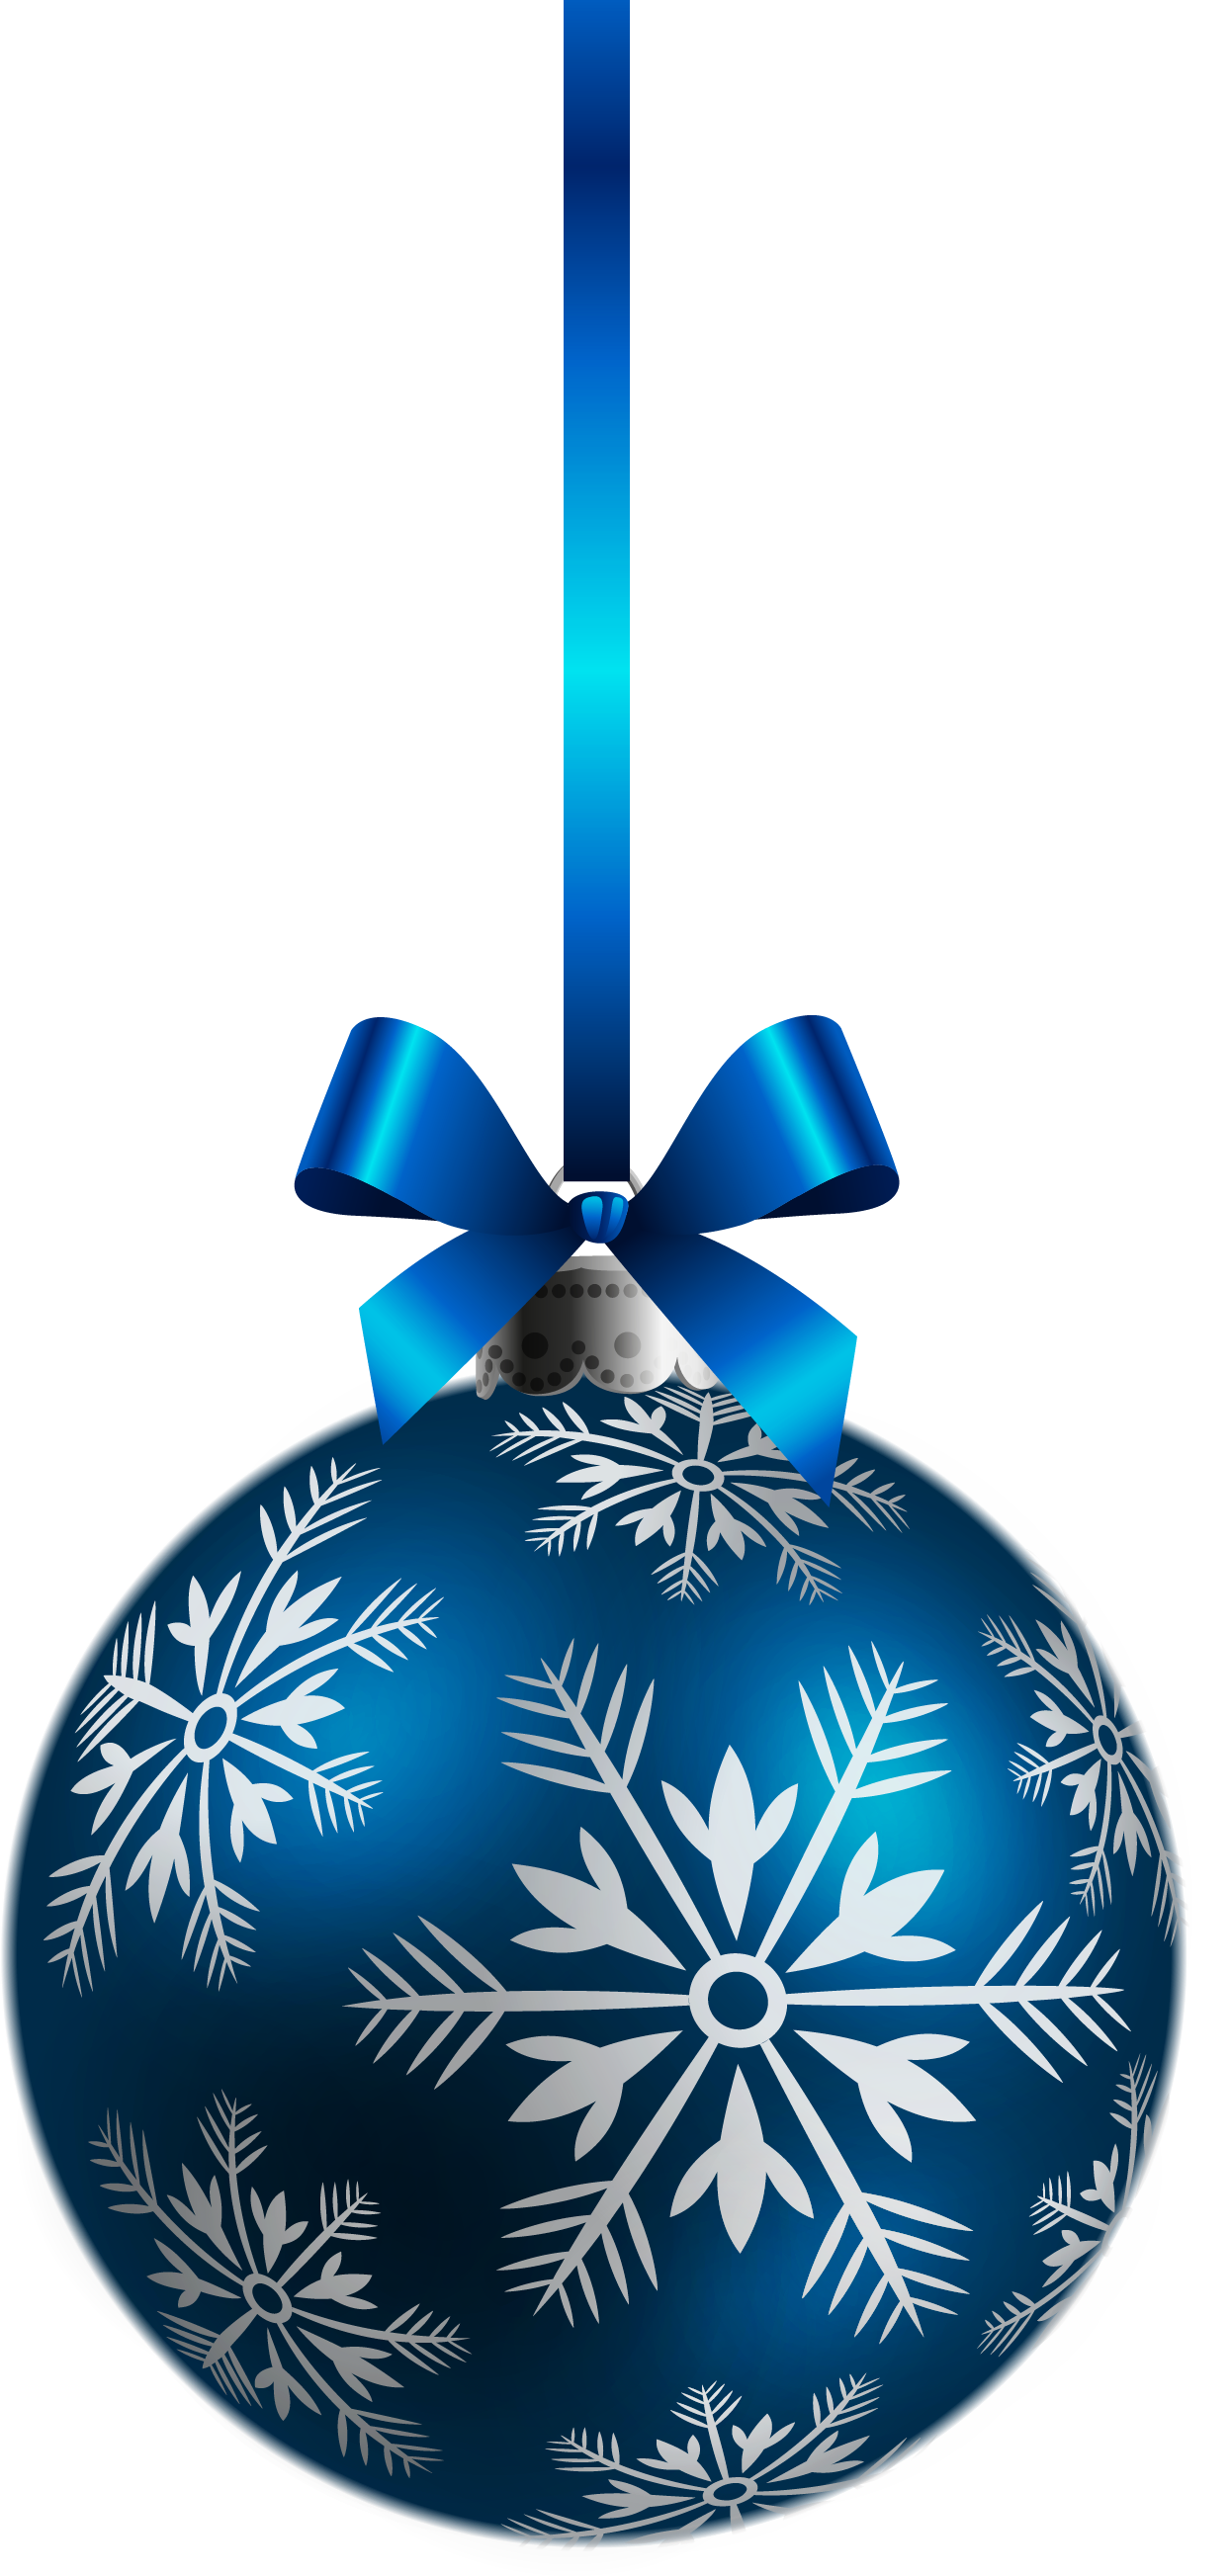 Blue Christmas Decorations Free Cliparts That You Can Download To